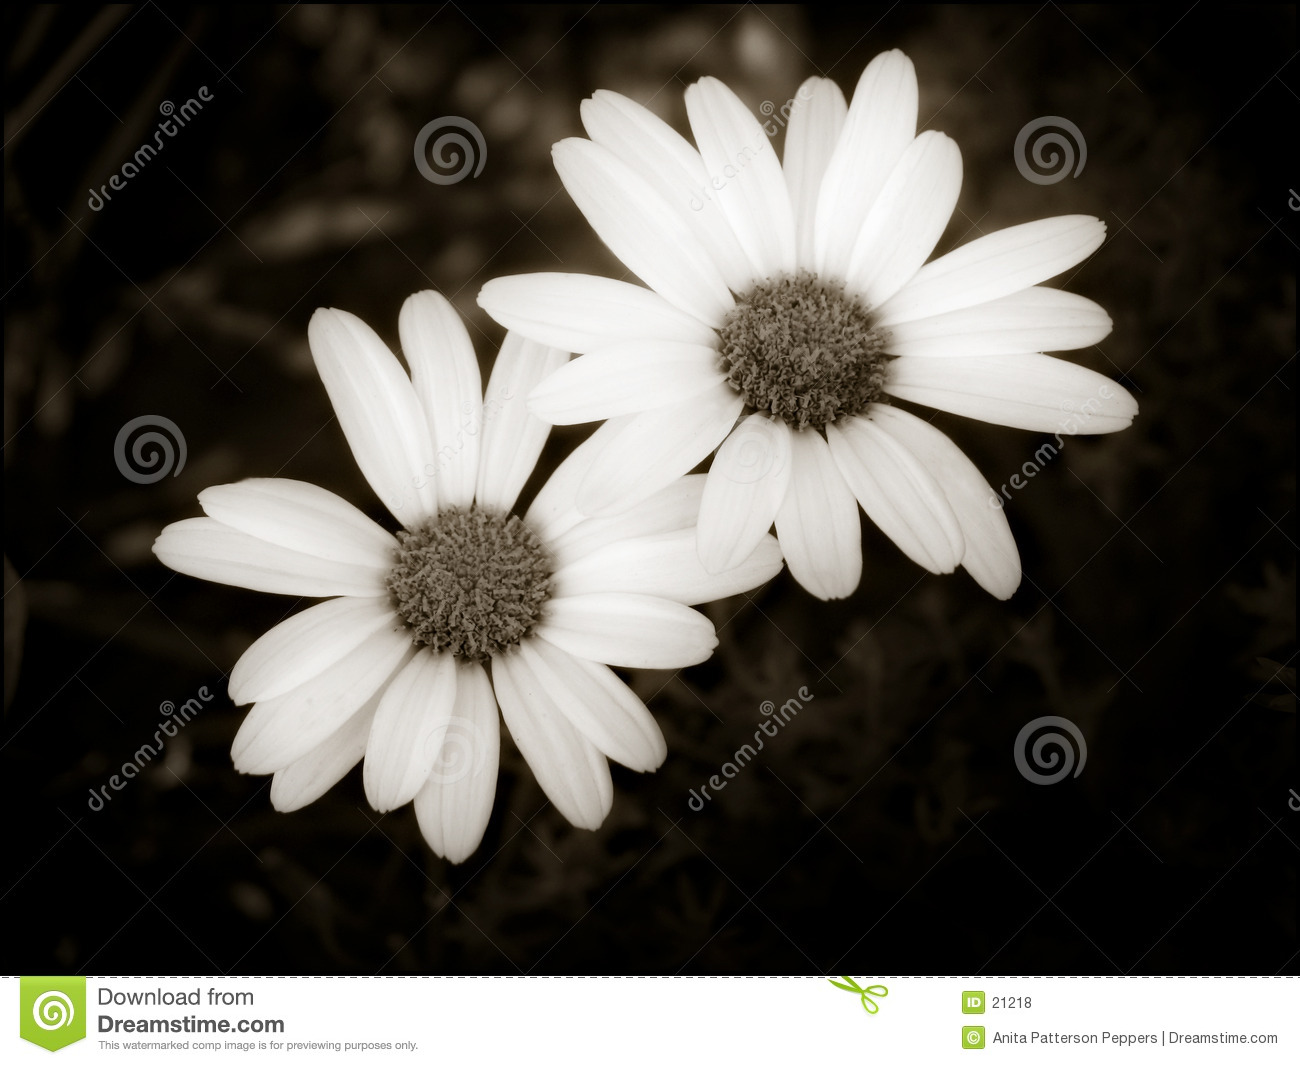 Two simple daisies